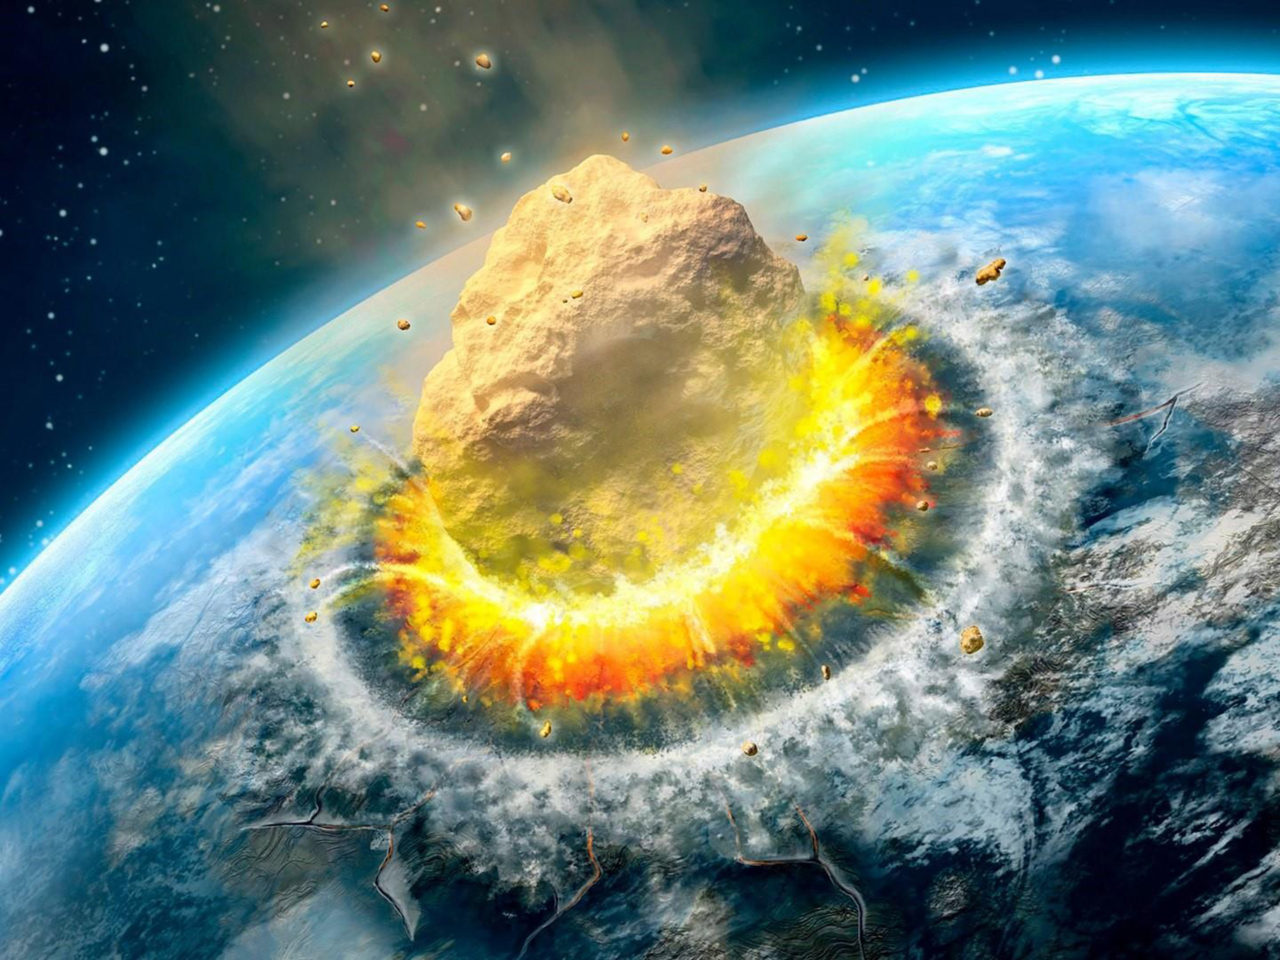 Asteroid Impact Falling Asteroid On Earth Ultra Hd Background 3840x2160